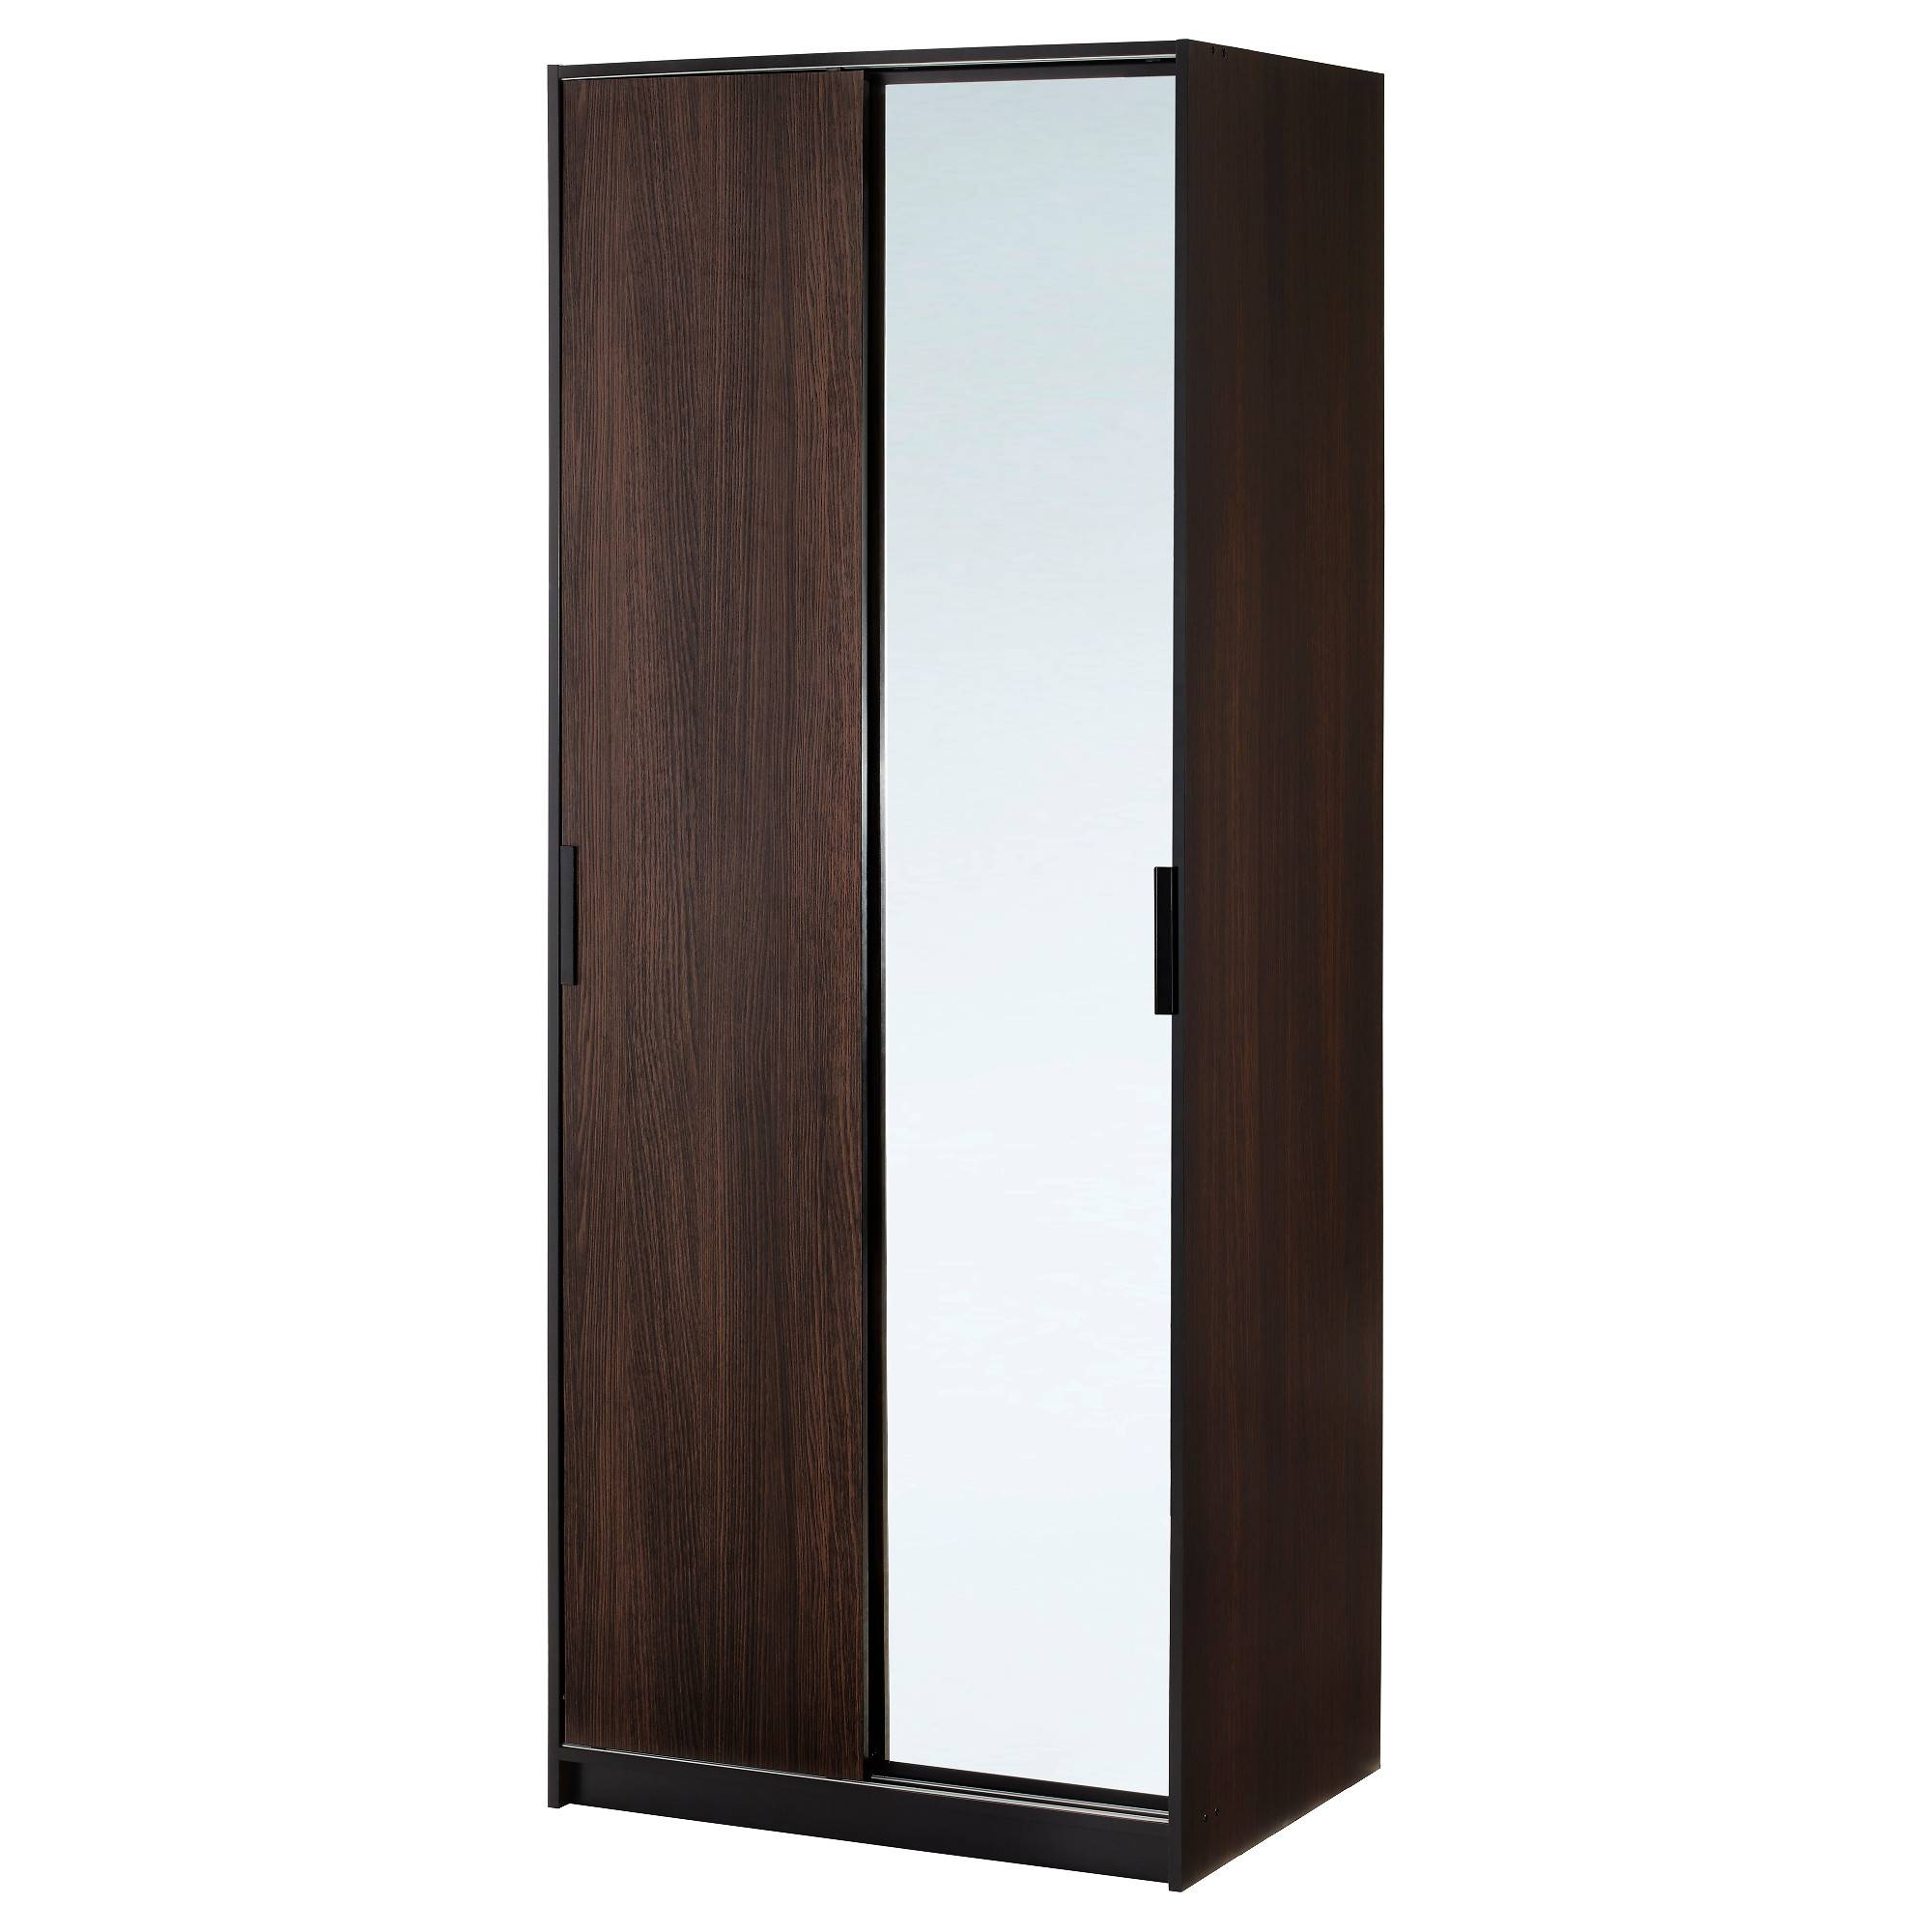 Wardrobes & Armoires – Open, Fitted, Sliding Doors & More – Ikea Intended For Black Wood Wardrobes (View 12 of 15)